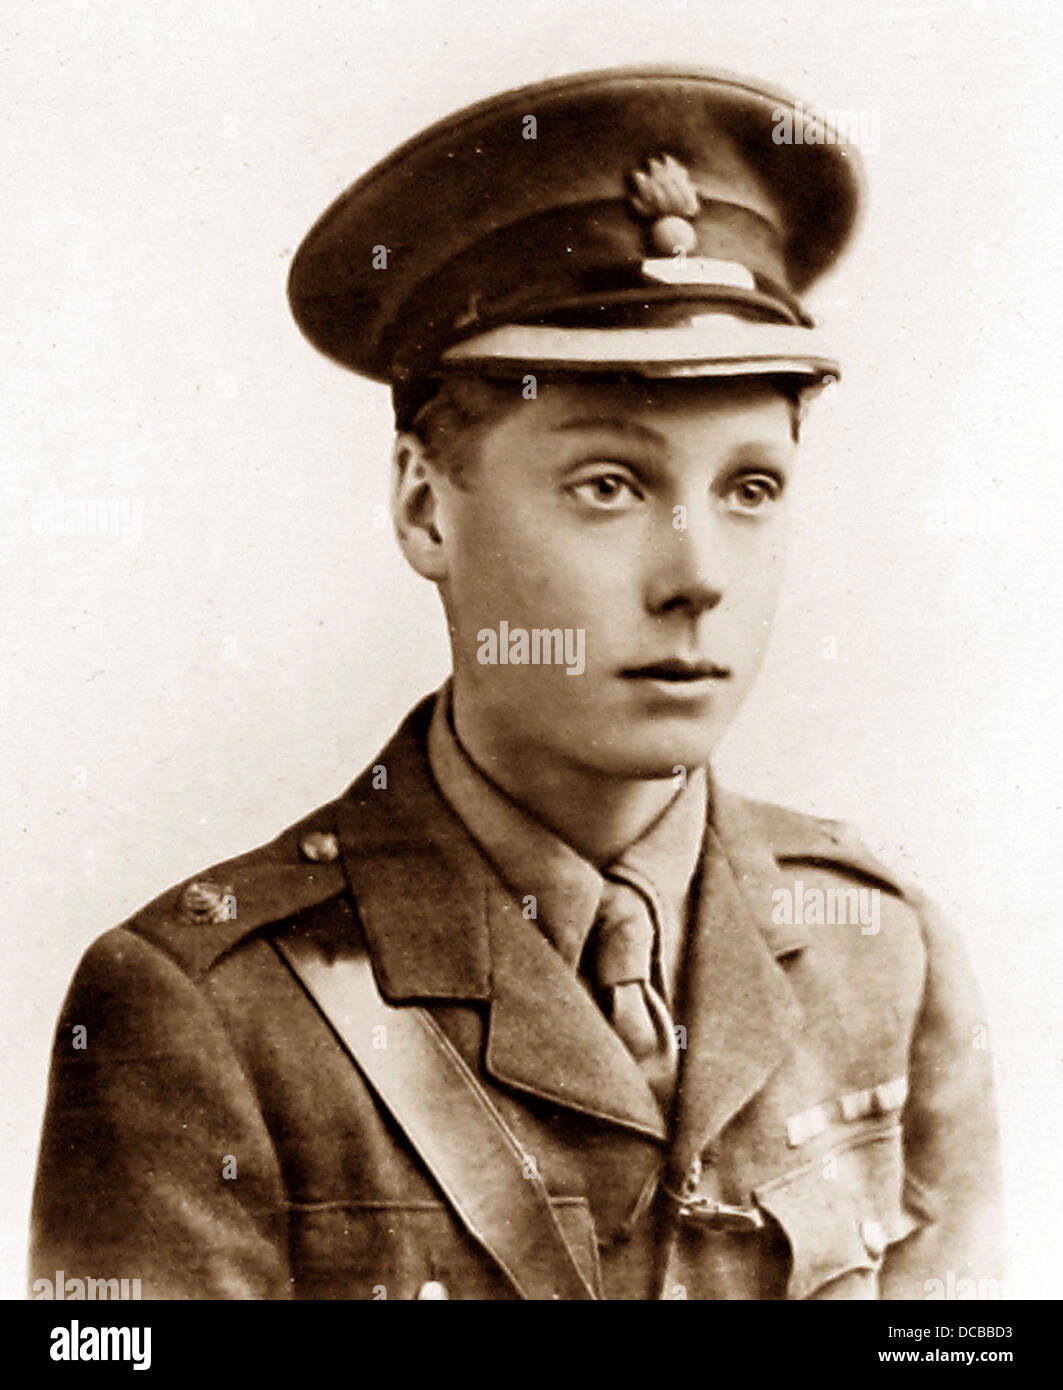 HRH Prince of Wales during WW1 - Stock Image